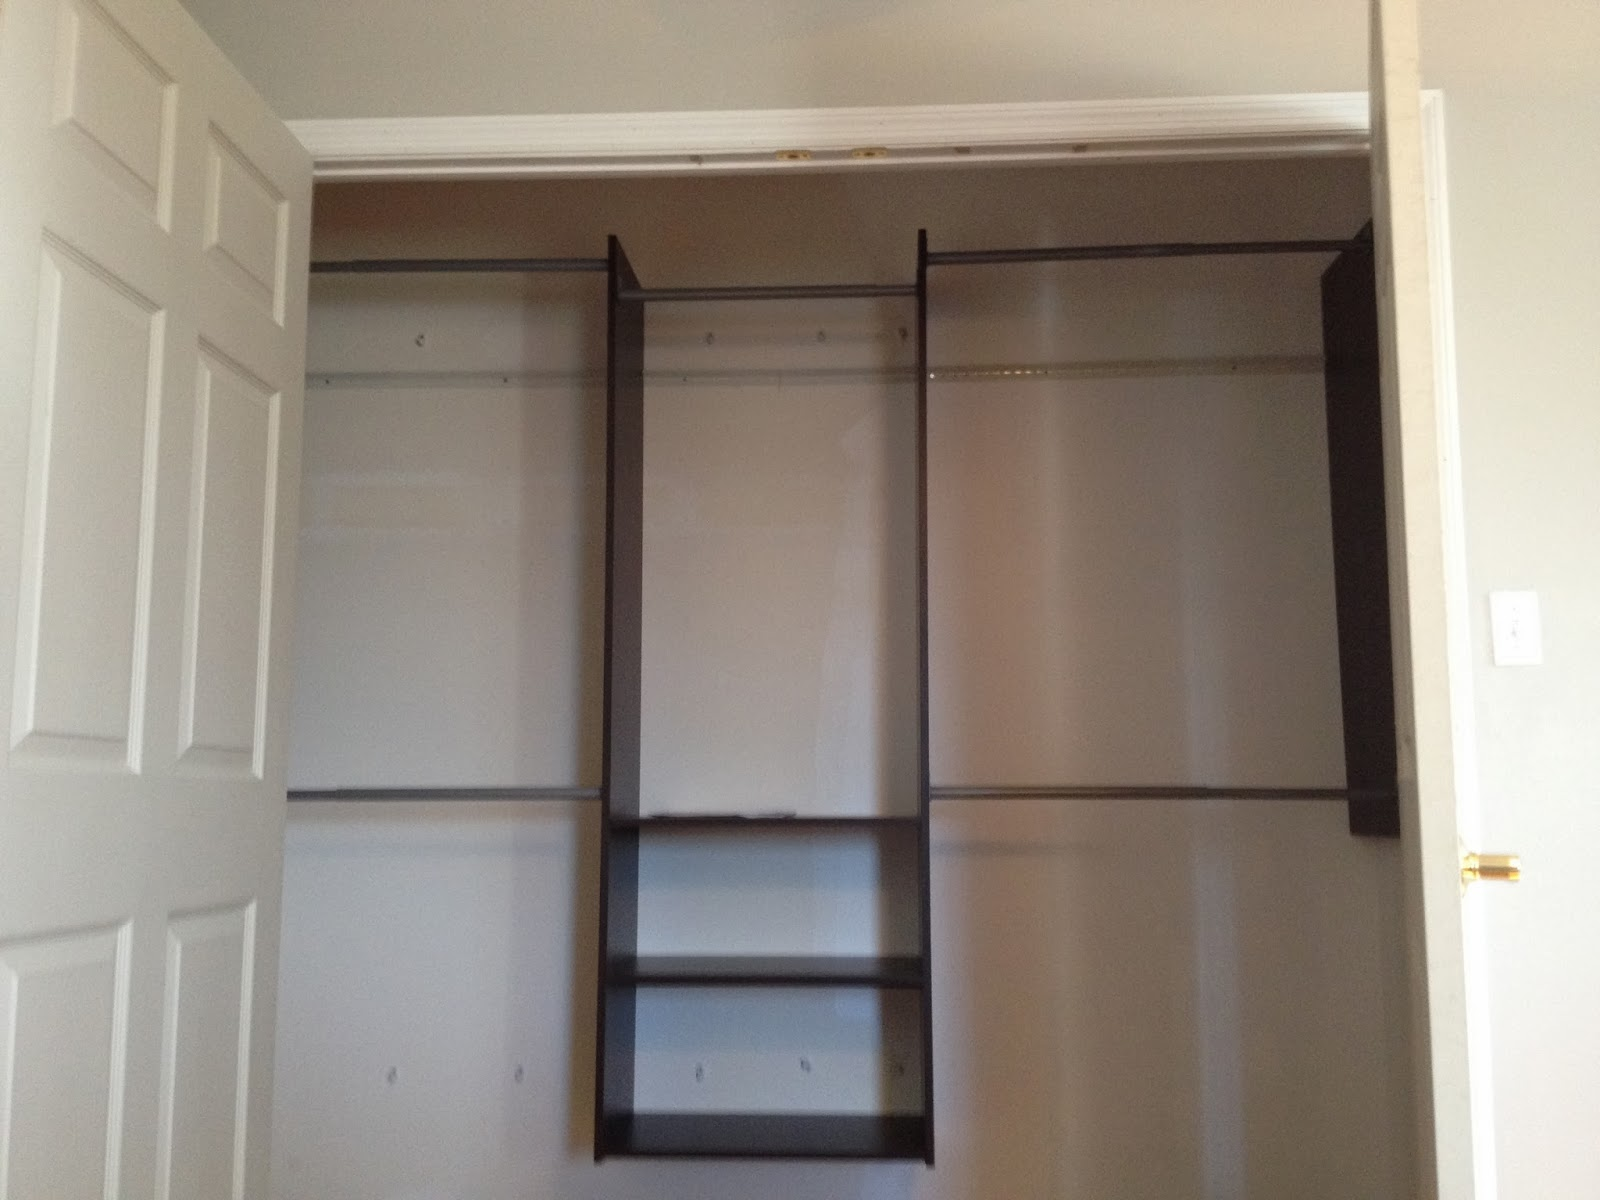 Our Clothes Fit Easily Thanks To The Double Rods On Both Sides Of The  Center. We Were Planning On Hanging Clothes On That Top Middle Rod Too, But  We Didnu0027t ...